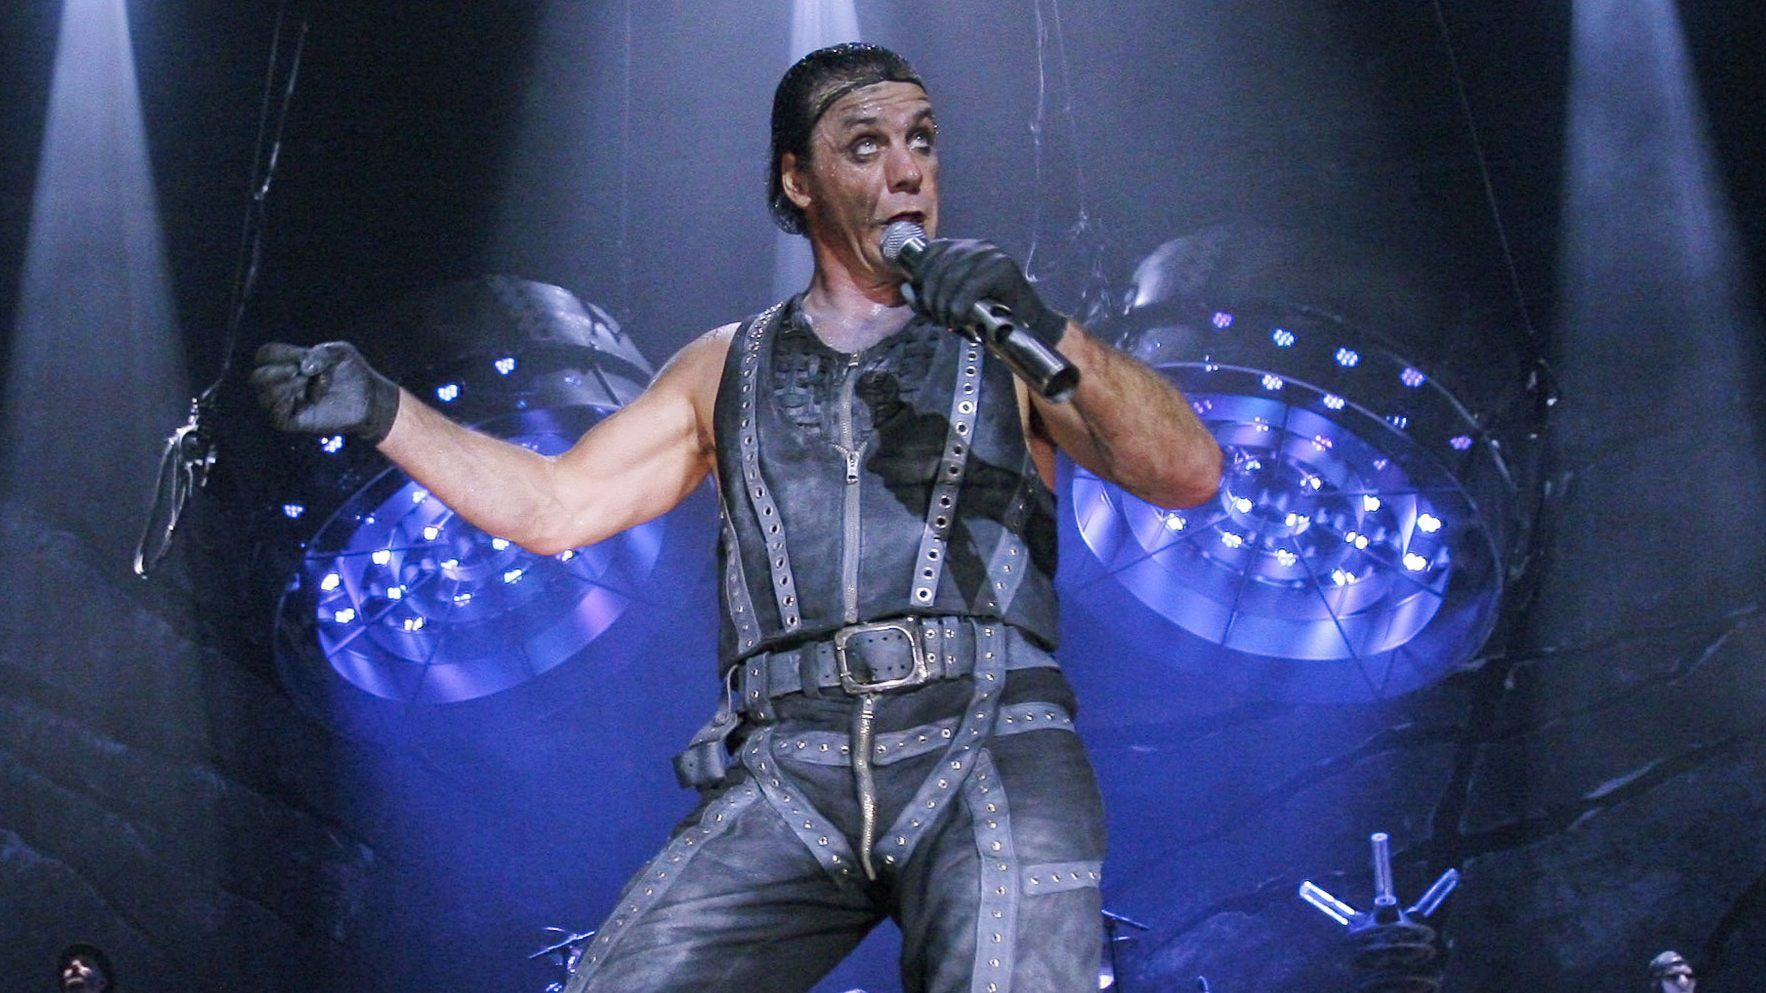 Vienna Rammstein Gives An Additional Concert At The Ernst Happel